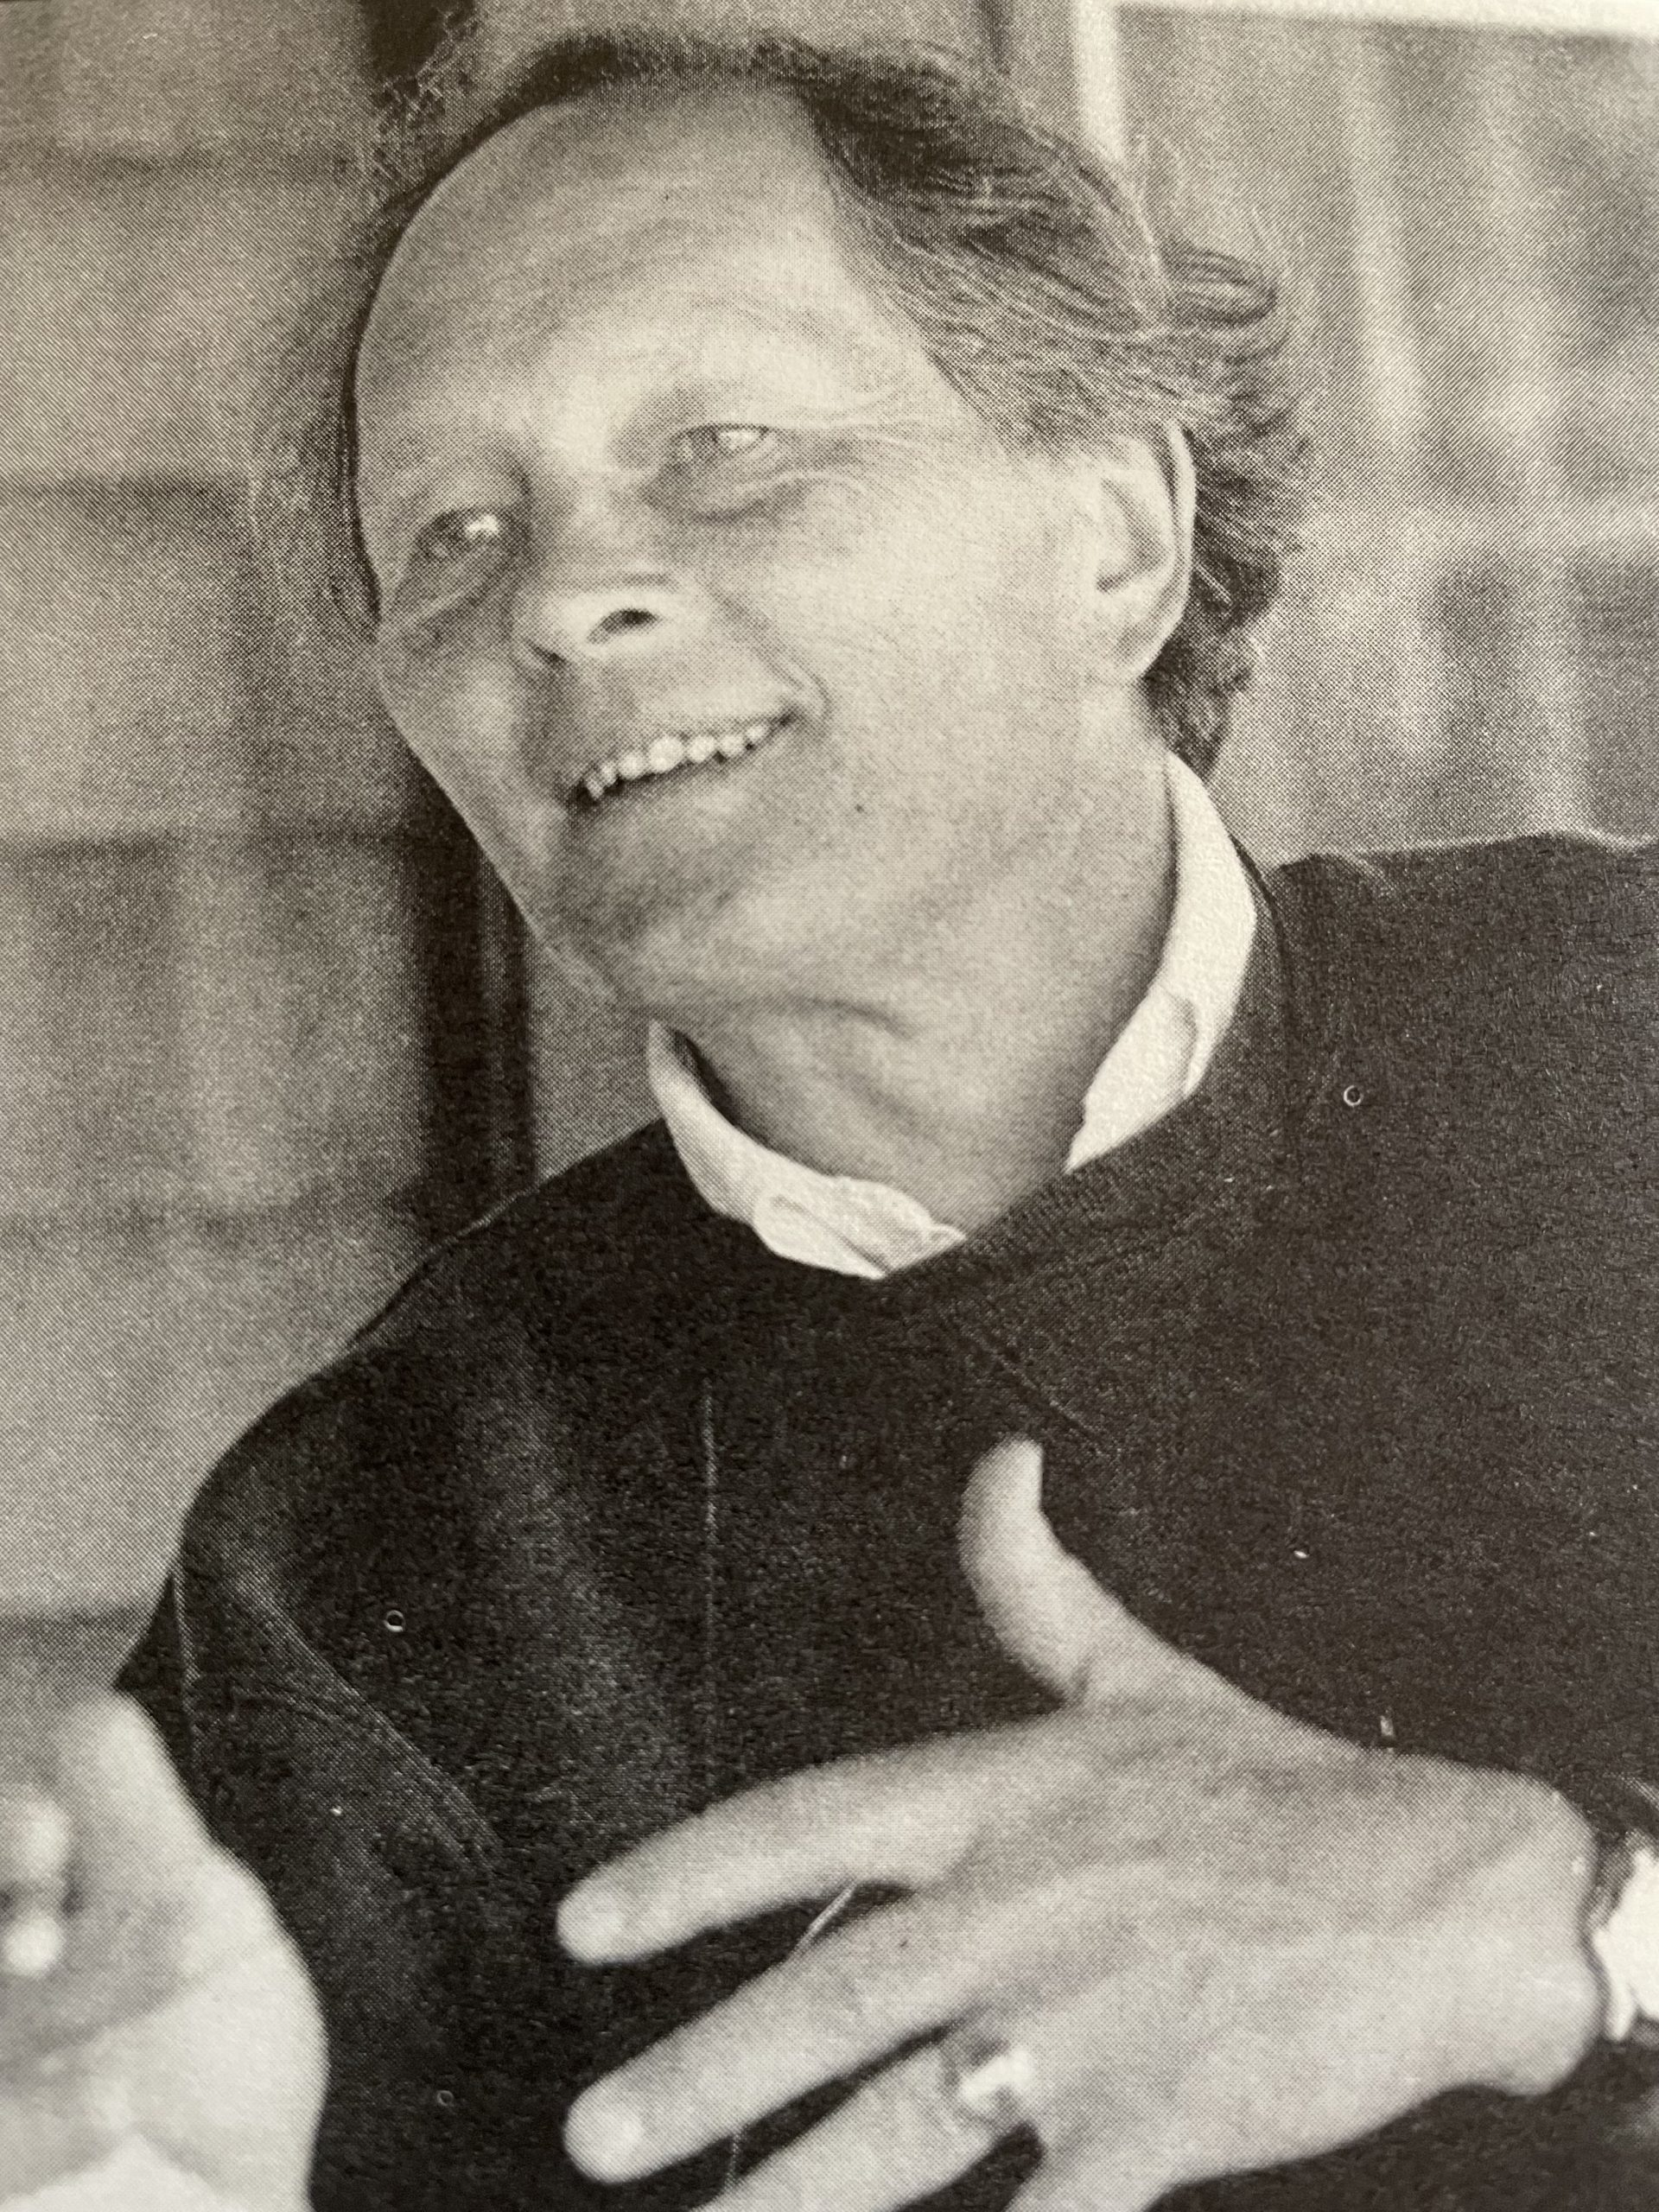 Image of Stephen Spongberg, first director of Polly Hill Arboretum, wrote the defining monograph on stewartia in the 1970's. His work proved seminal for PHA's involvement in stewartia collection work and partnerships into the 21st century.